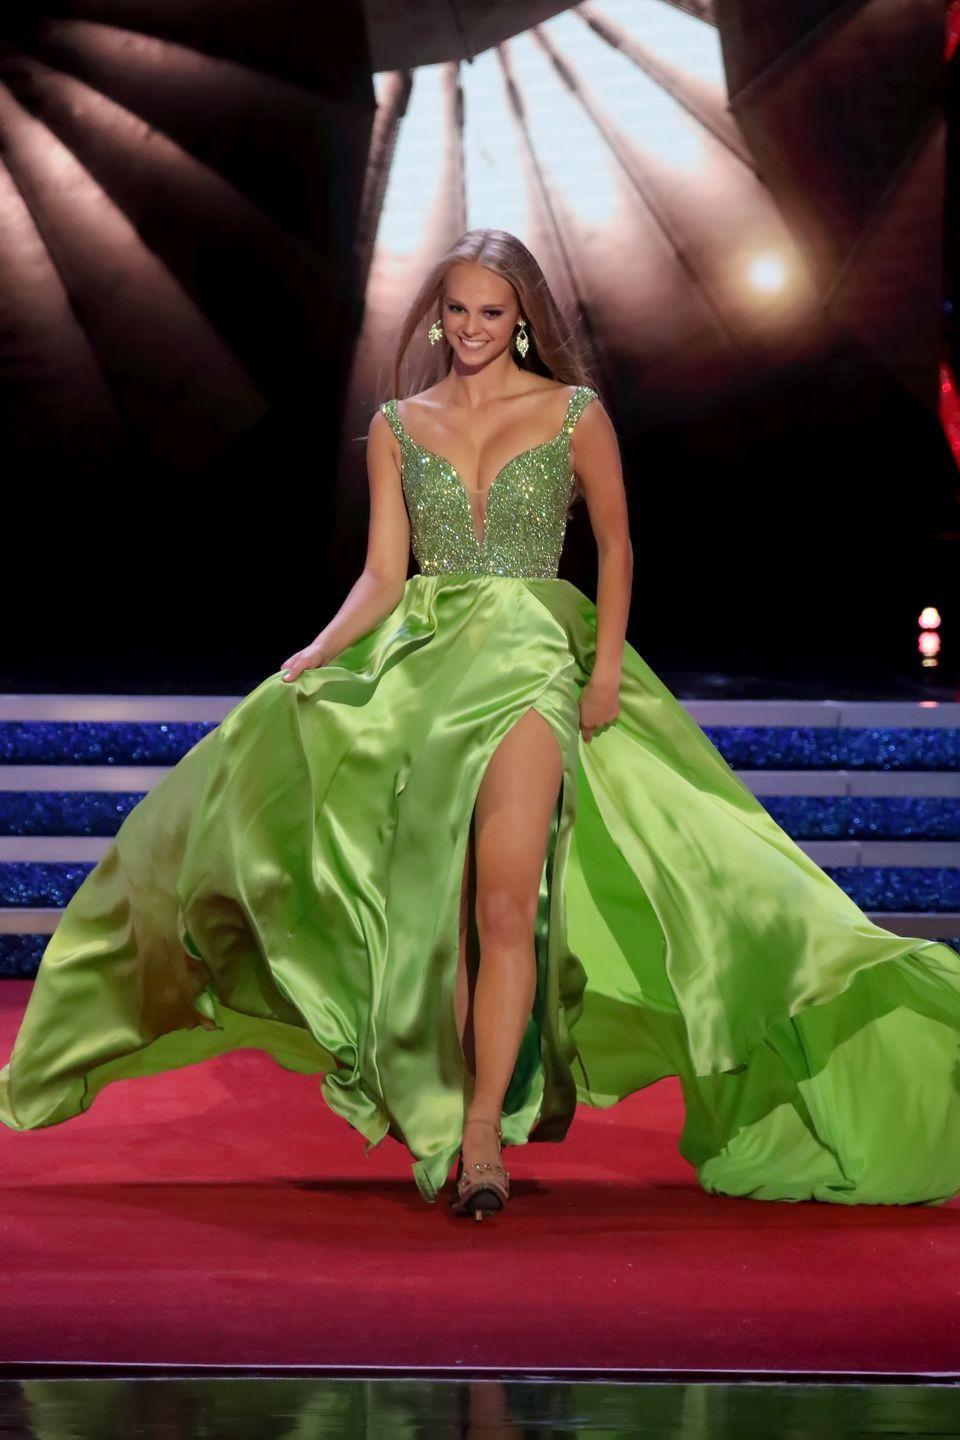 <p>Marisa Moorhouse of New Hampshire made sure she stole the show with this green gown. She sure knows how to work a train.</p>